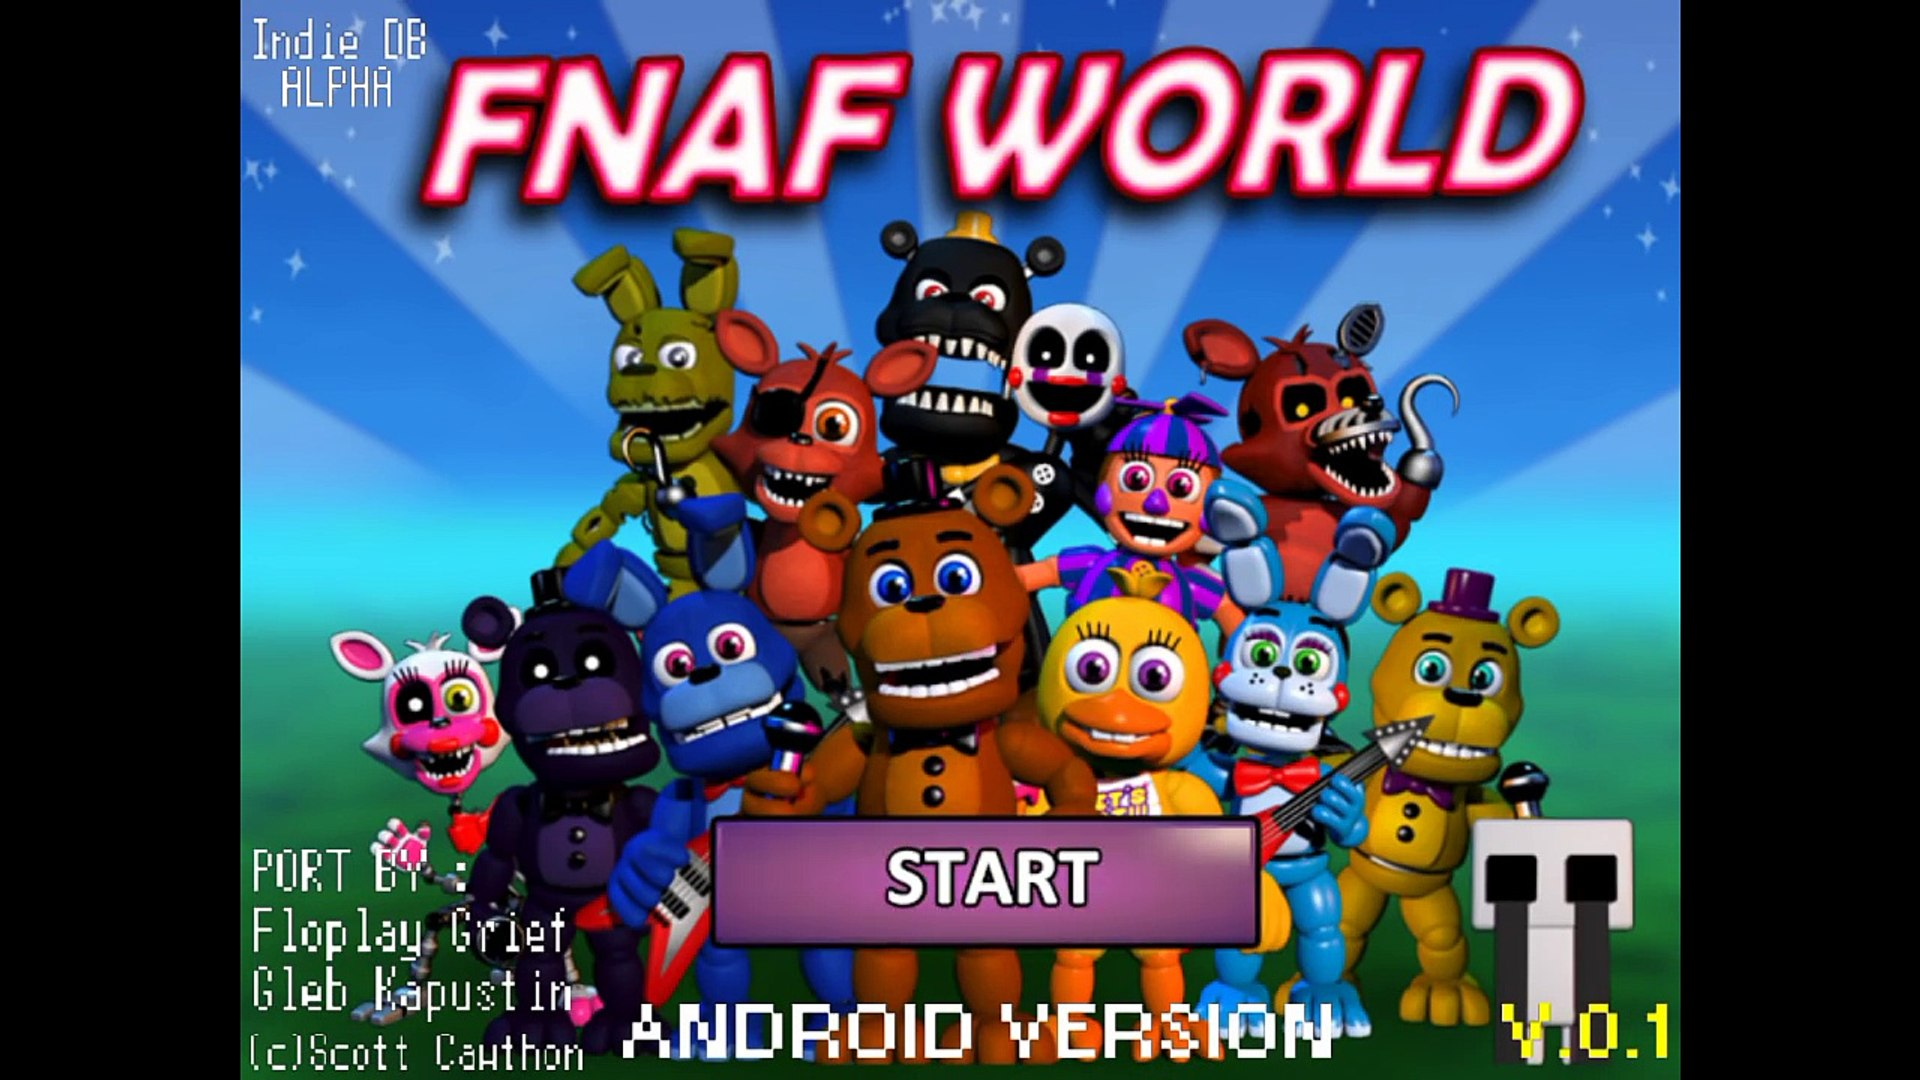 [FANPORT] FNaF World Android Version v0 1